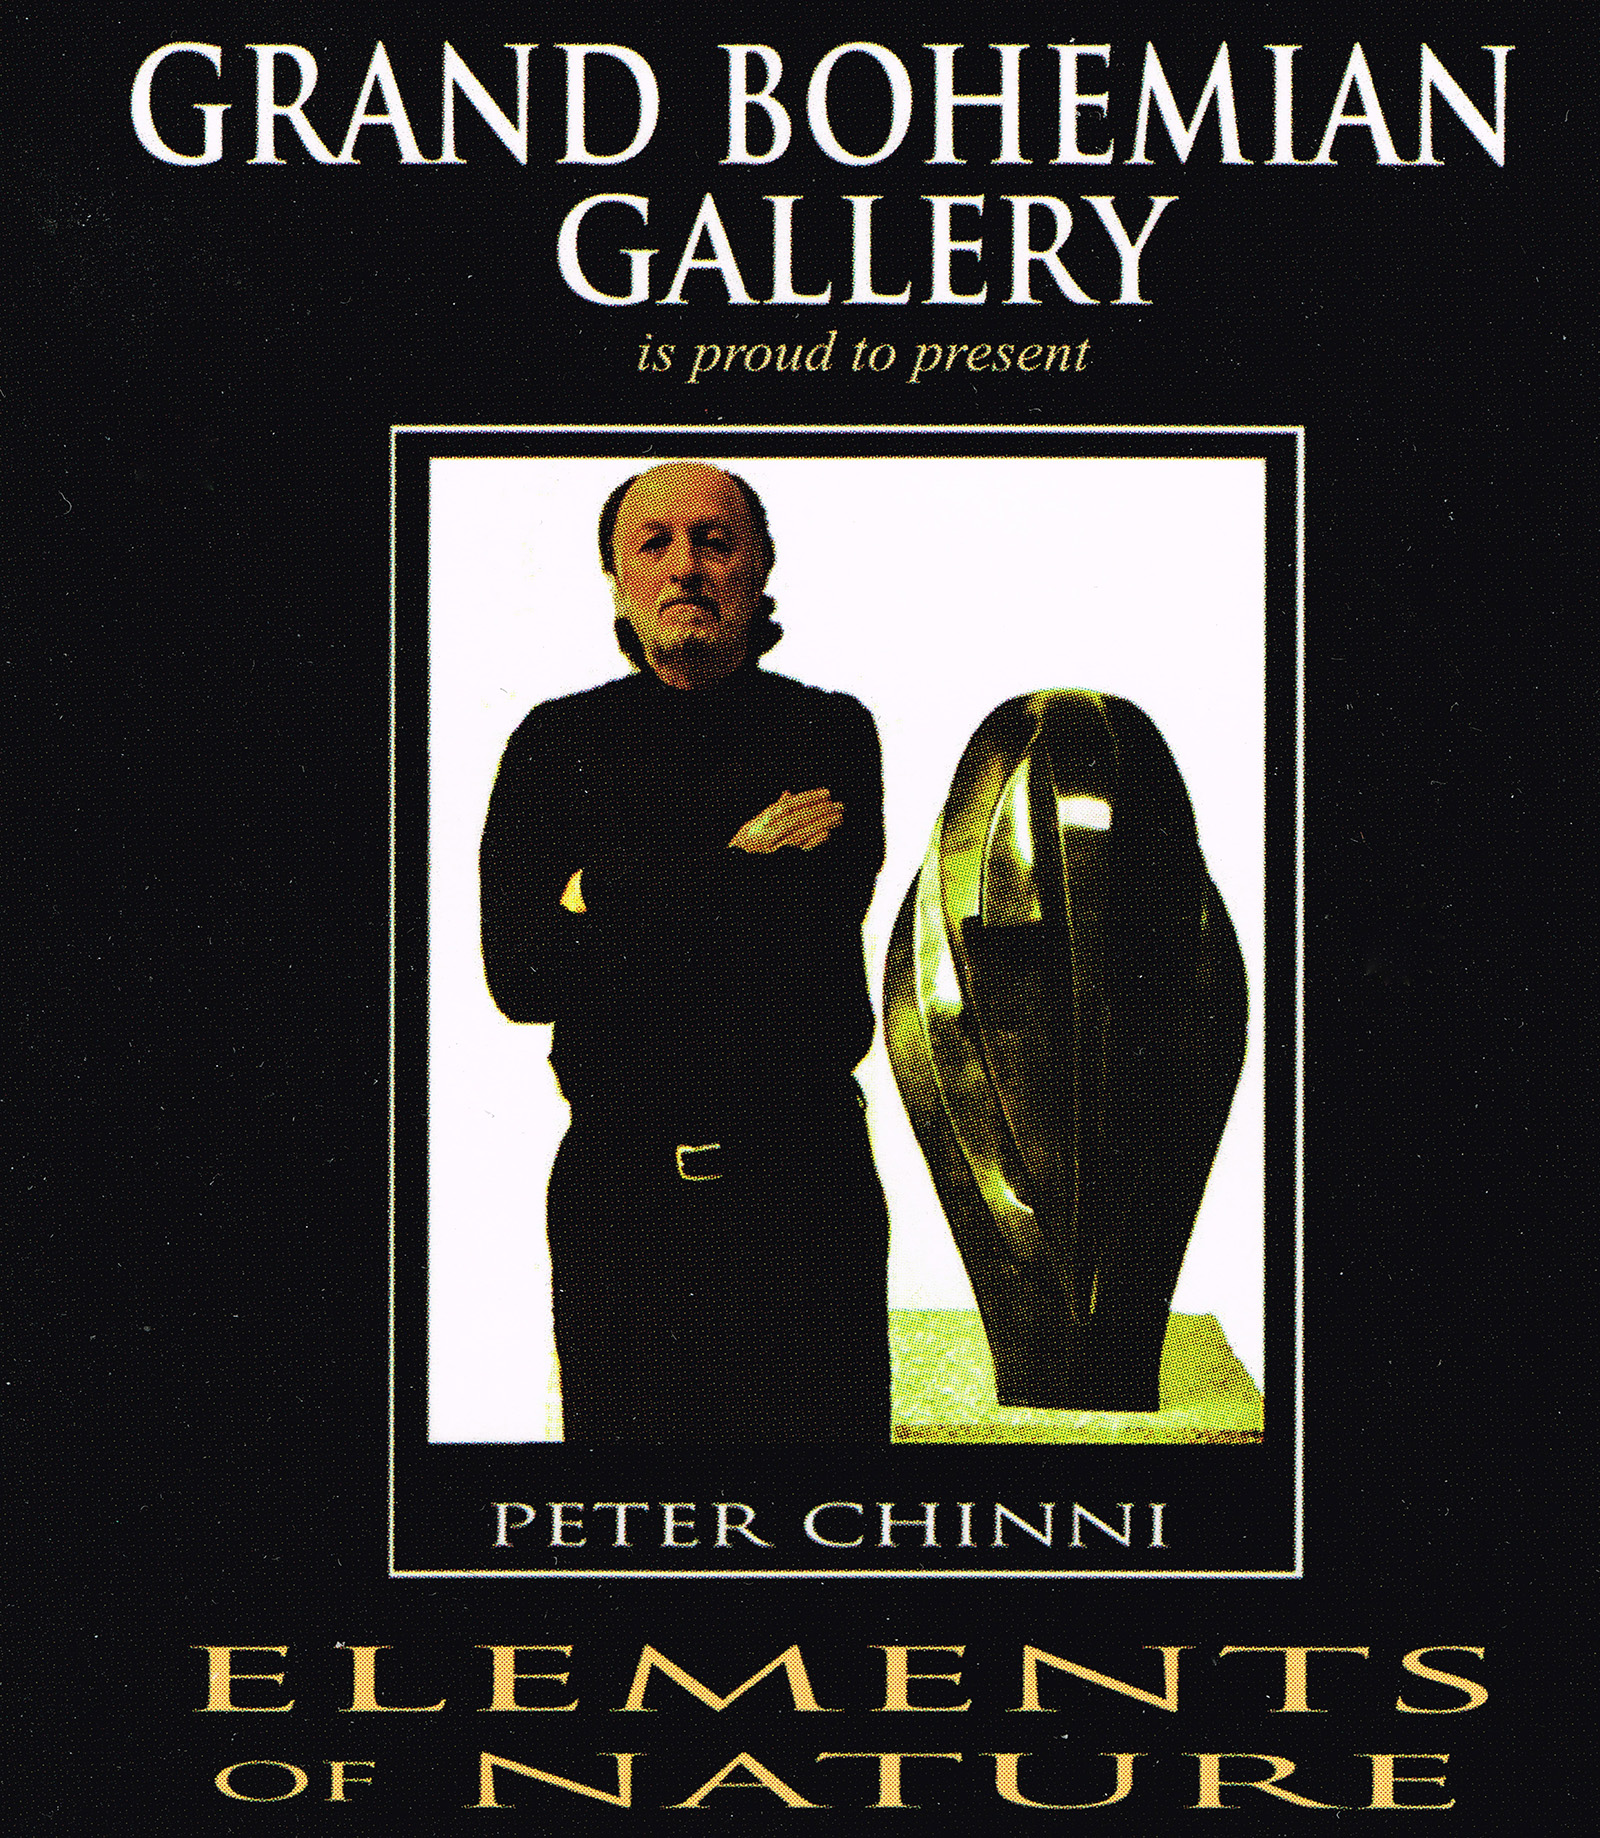 2010 Exhibition - Grand Bohemian Gallery.jpg